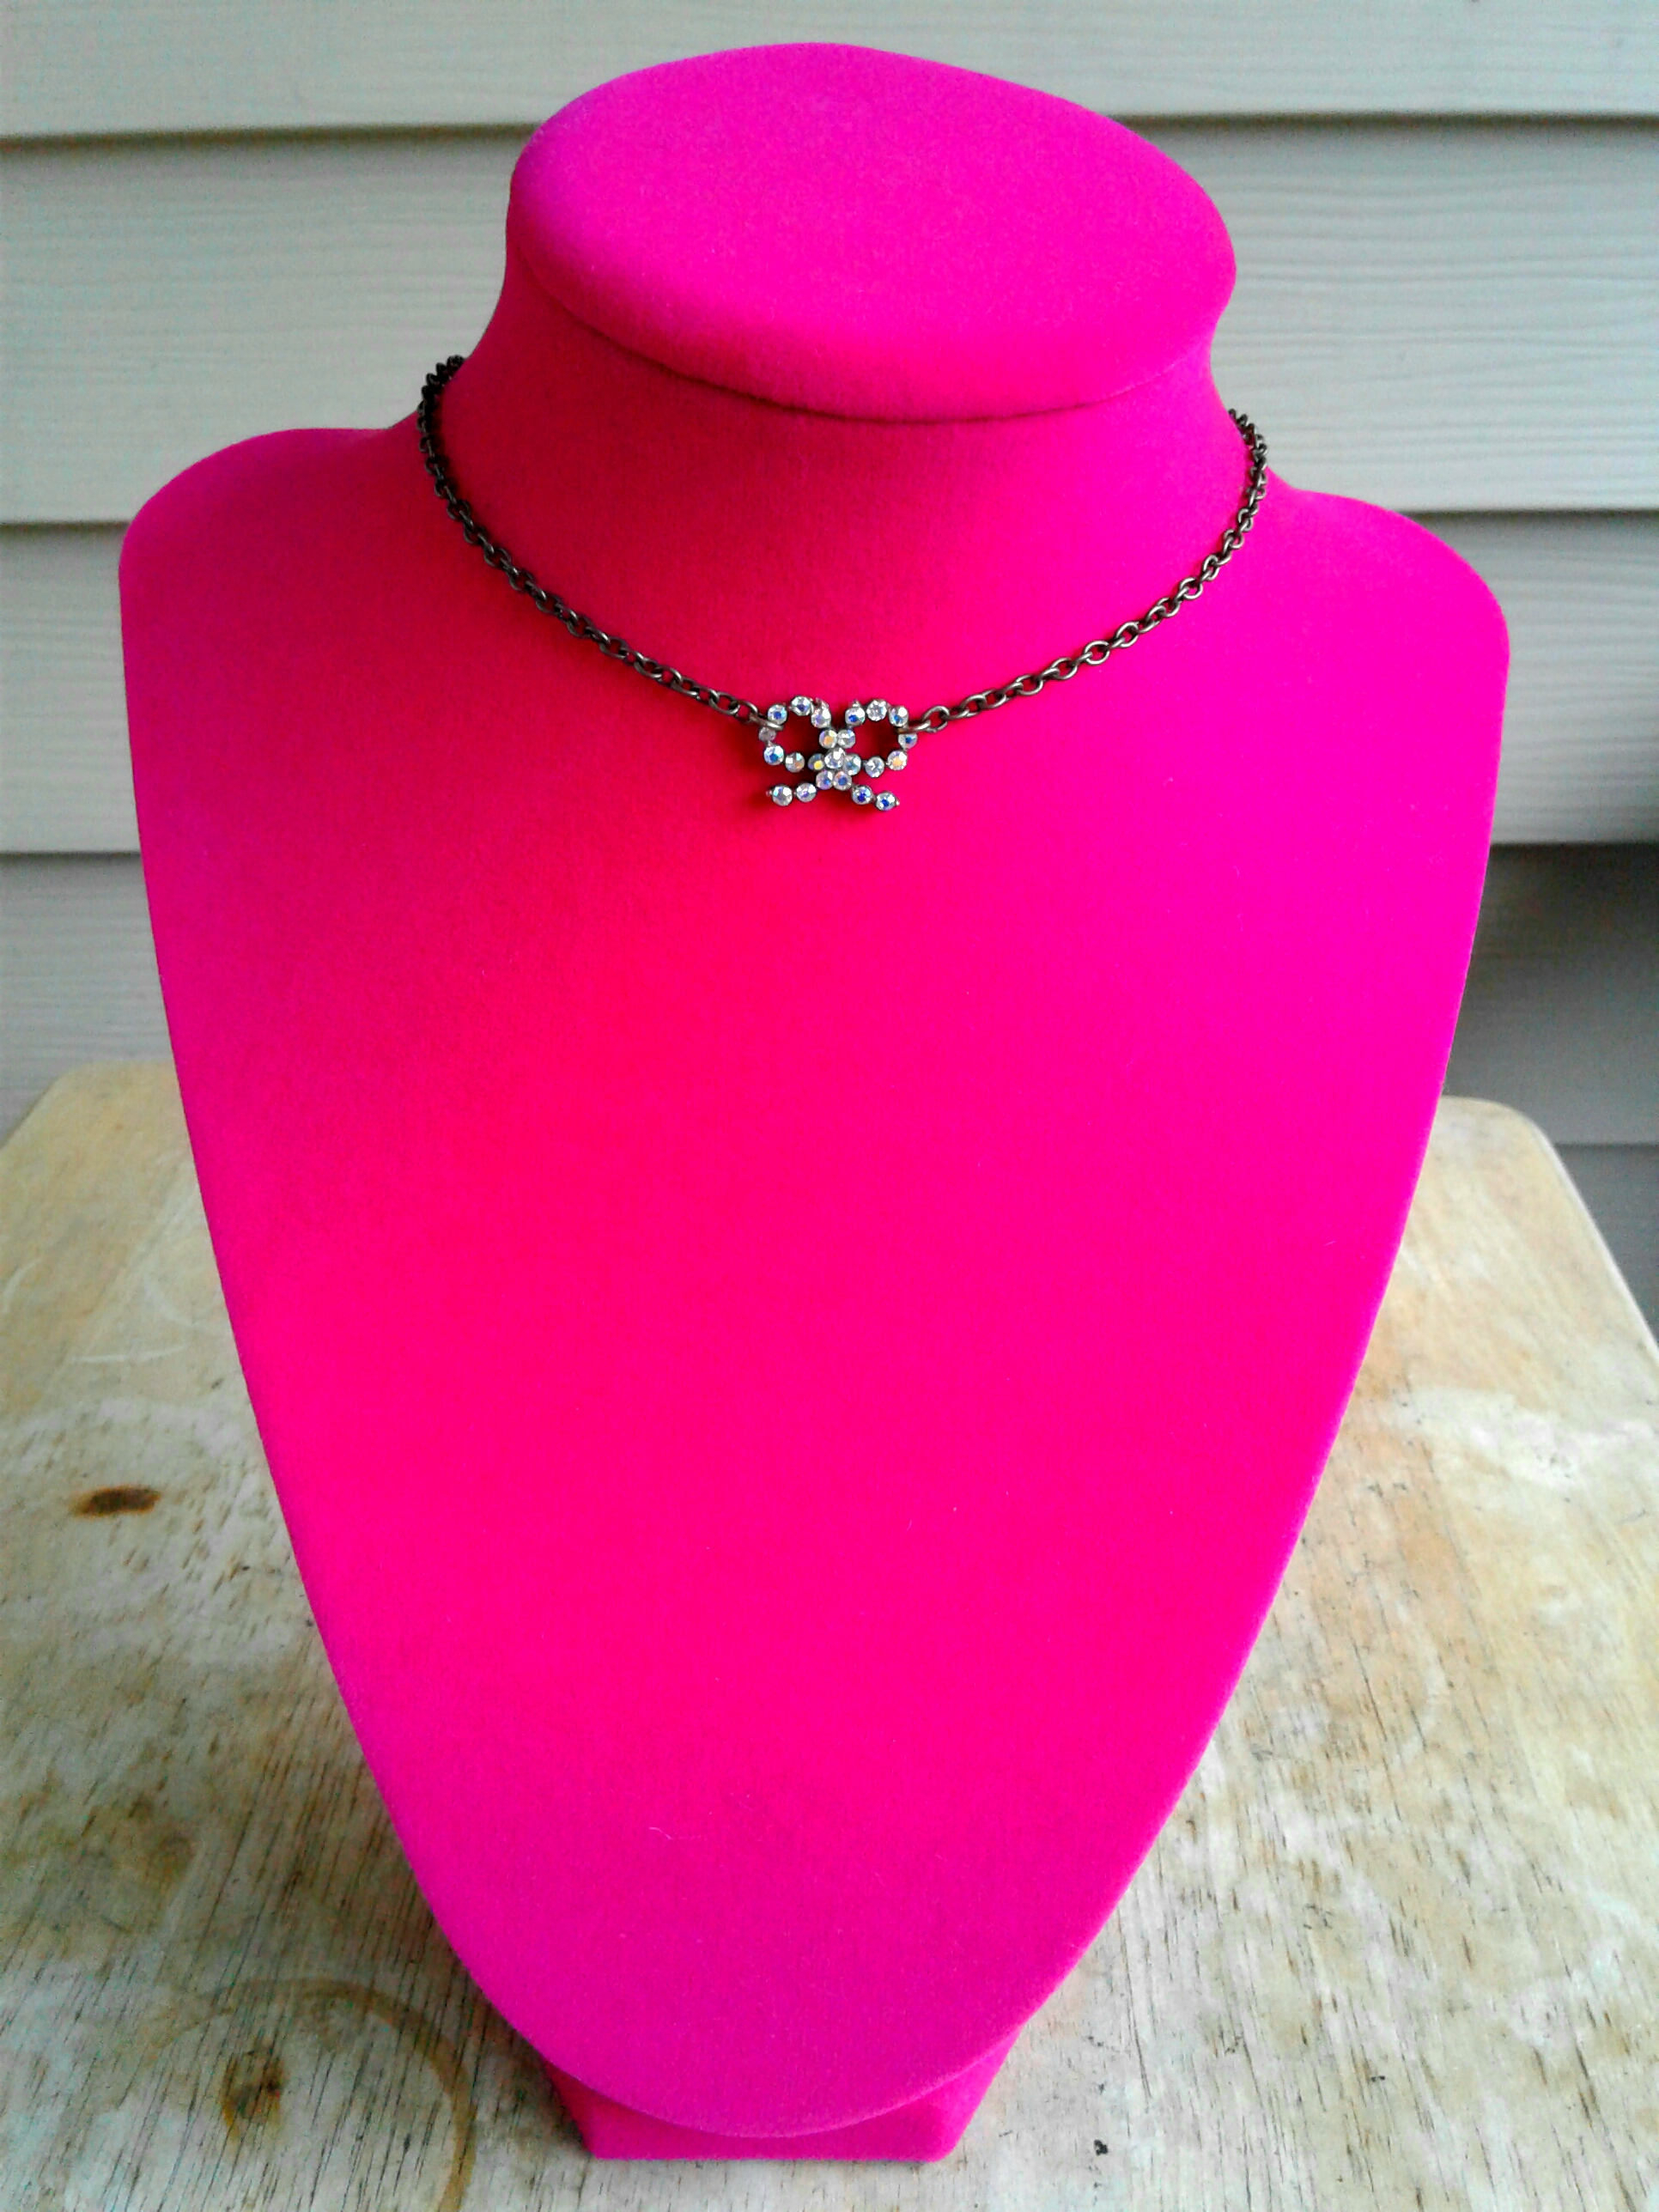 Sparkling Bow Choker Rhinestone Choker Necklace Chokers Bohemian Choker Bow  Charm Choker Bohemian Necklace Women's Choker From Artisanjewelrygifts Throughout Best And Newest Sparkling Bow Necklaces (View 16 of 25)